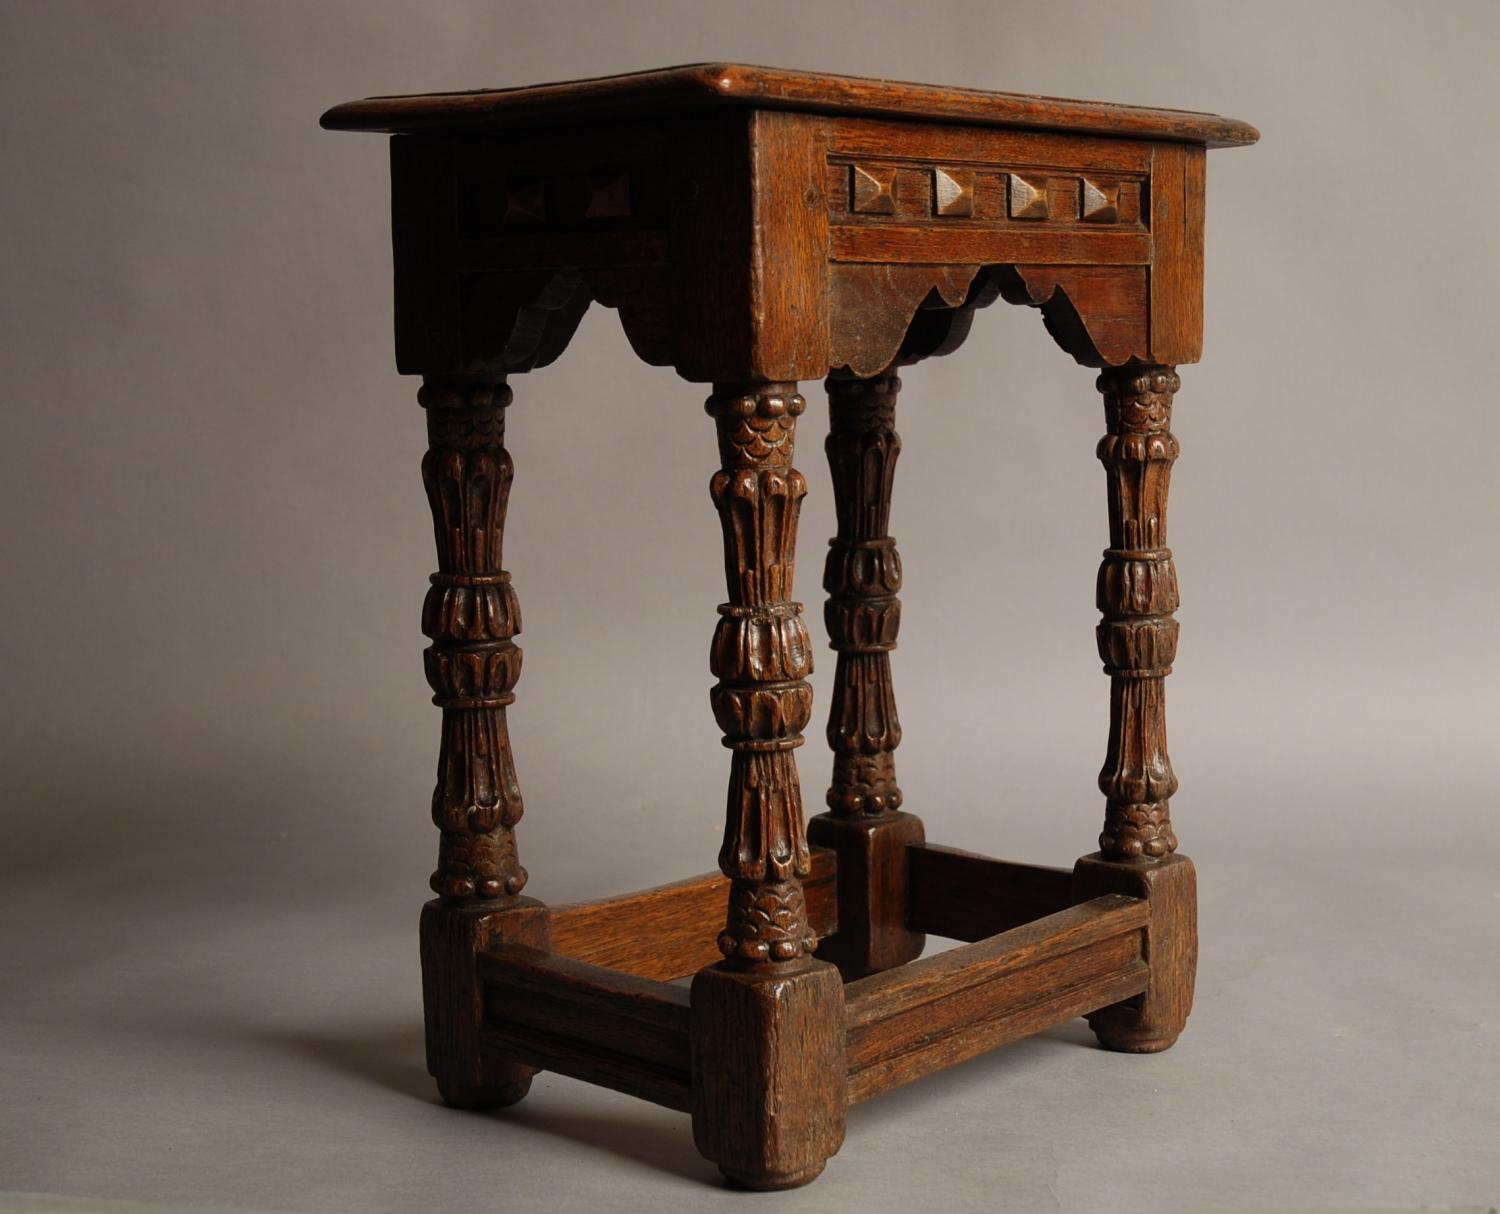 Mid/late 19thc oak joint stool in 16thc style